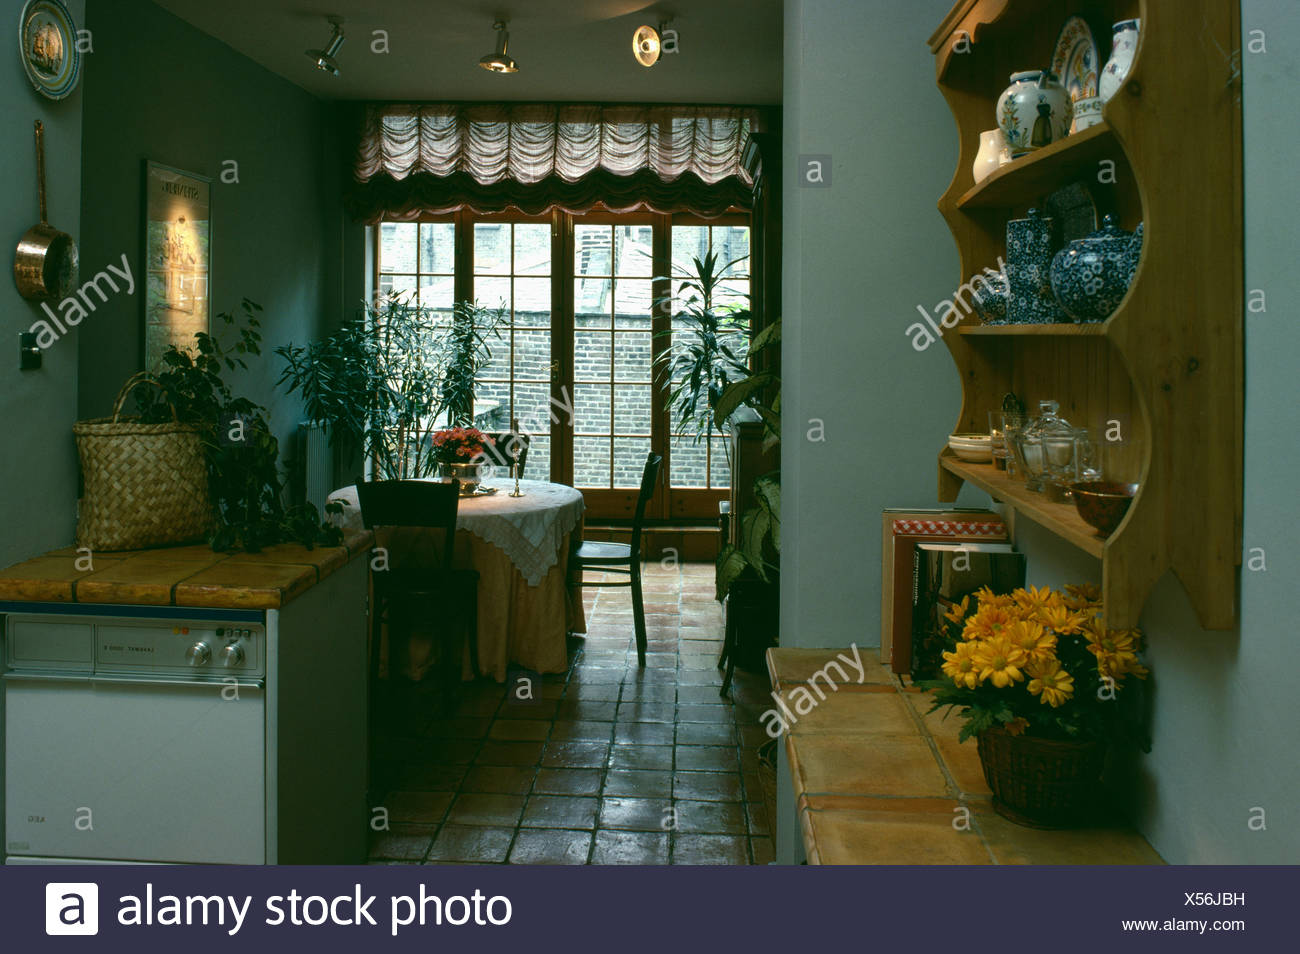 Pine Shelves On Wall Of Kitchen Diningroom Stock Photo 278585317